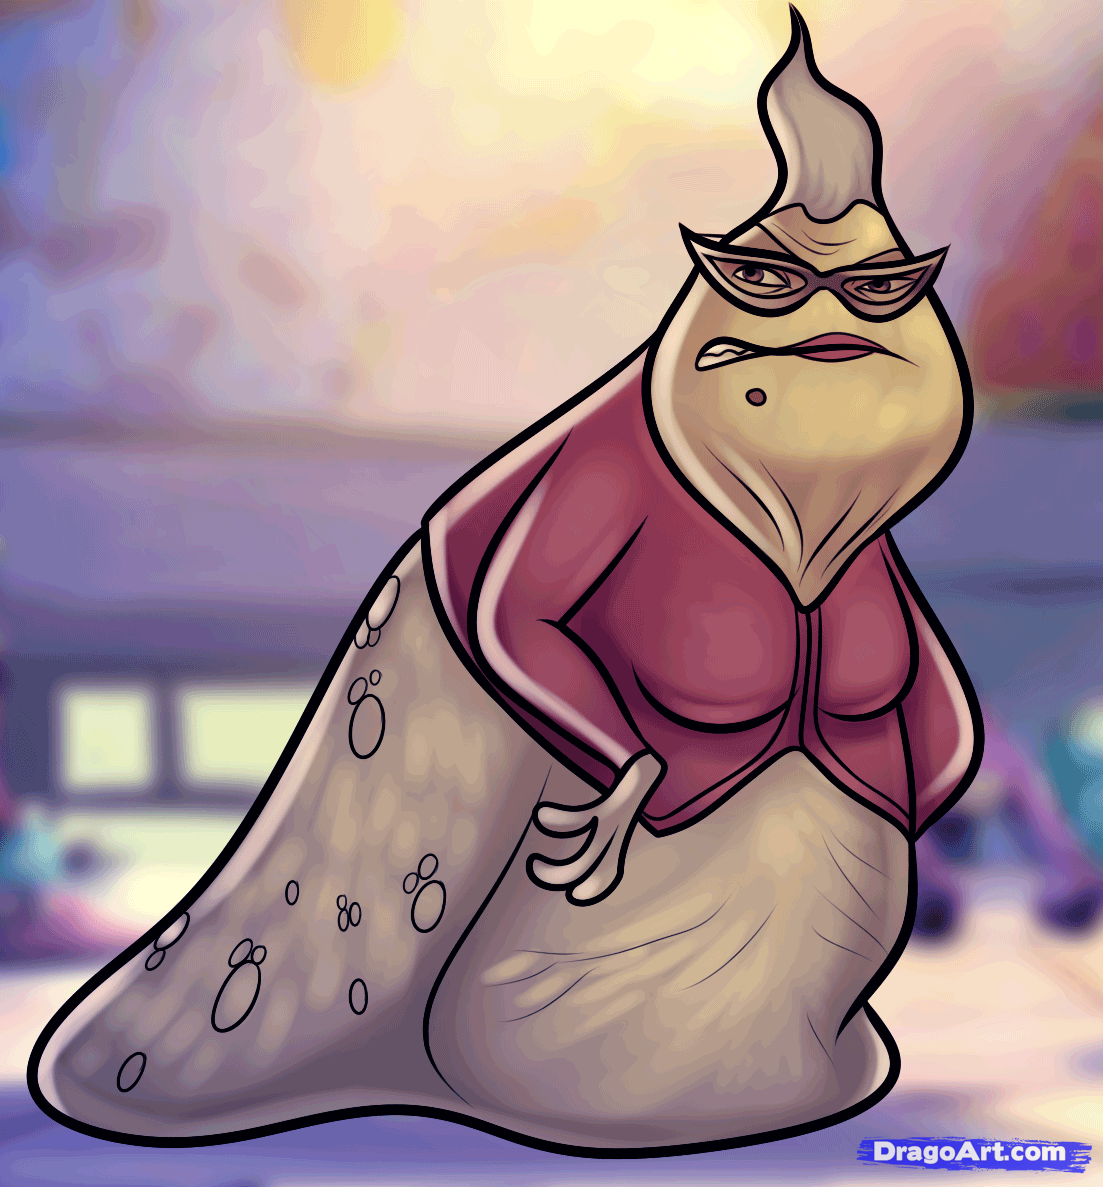 how to draw roz, roz from monsters inc | Dragoart | Pinterest ...